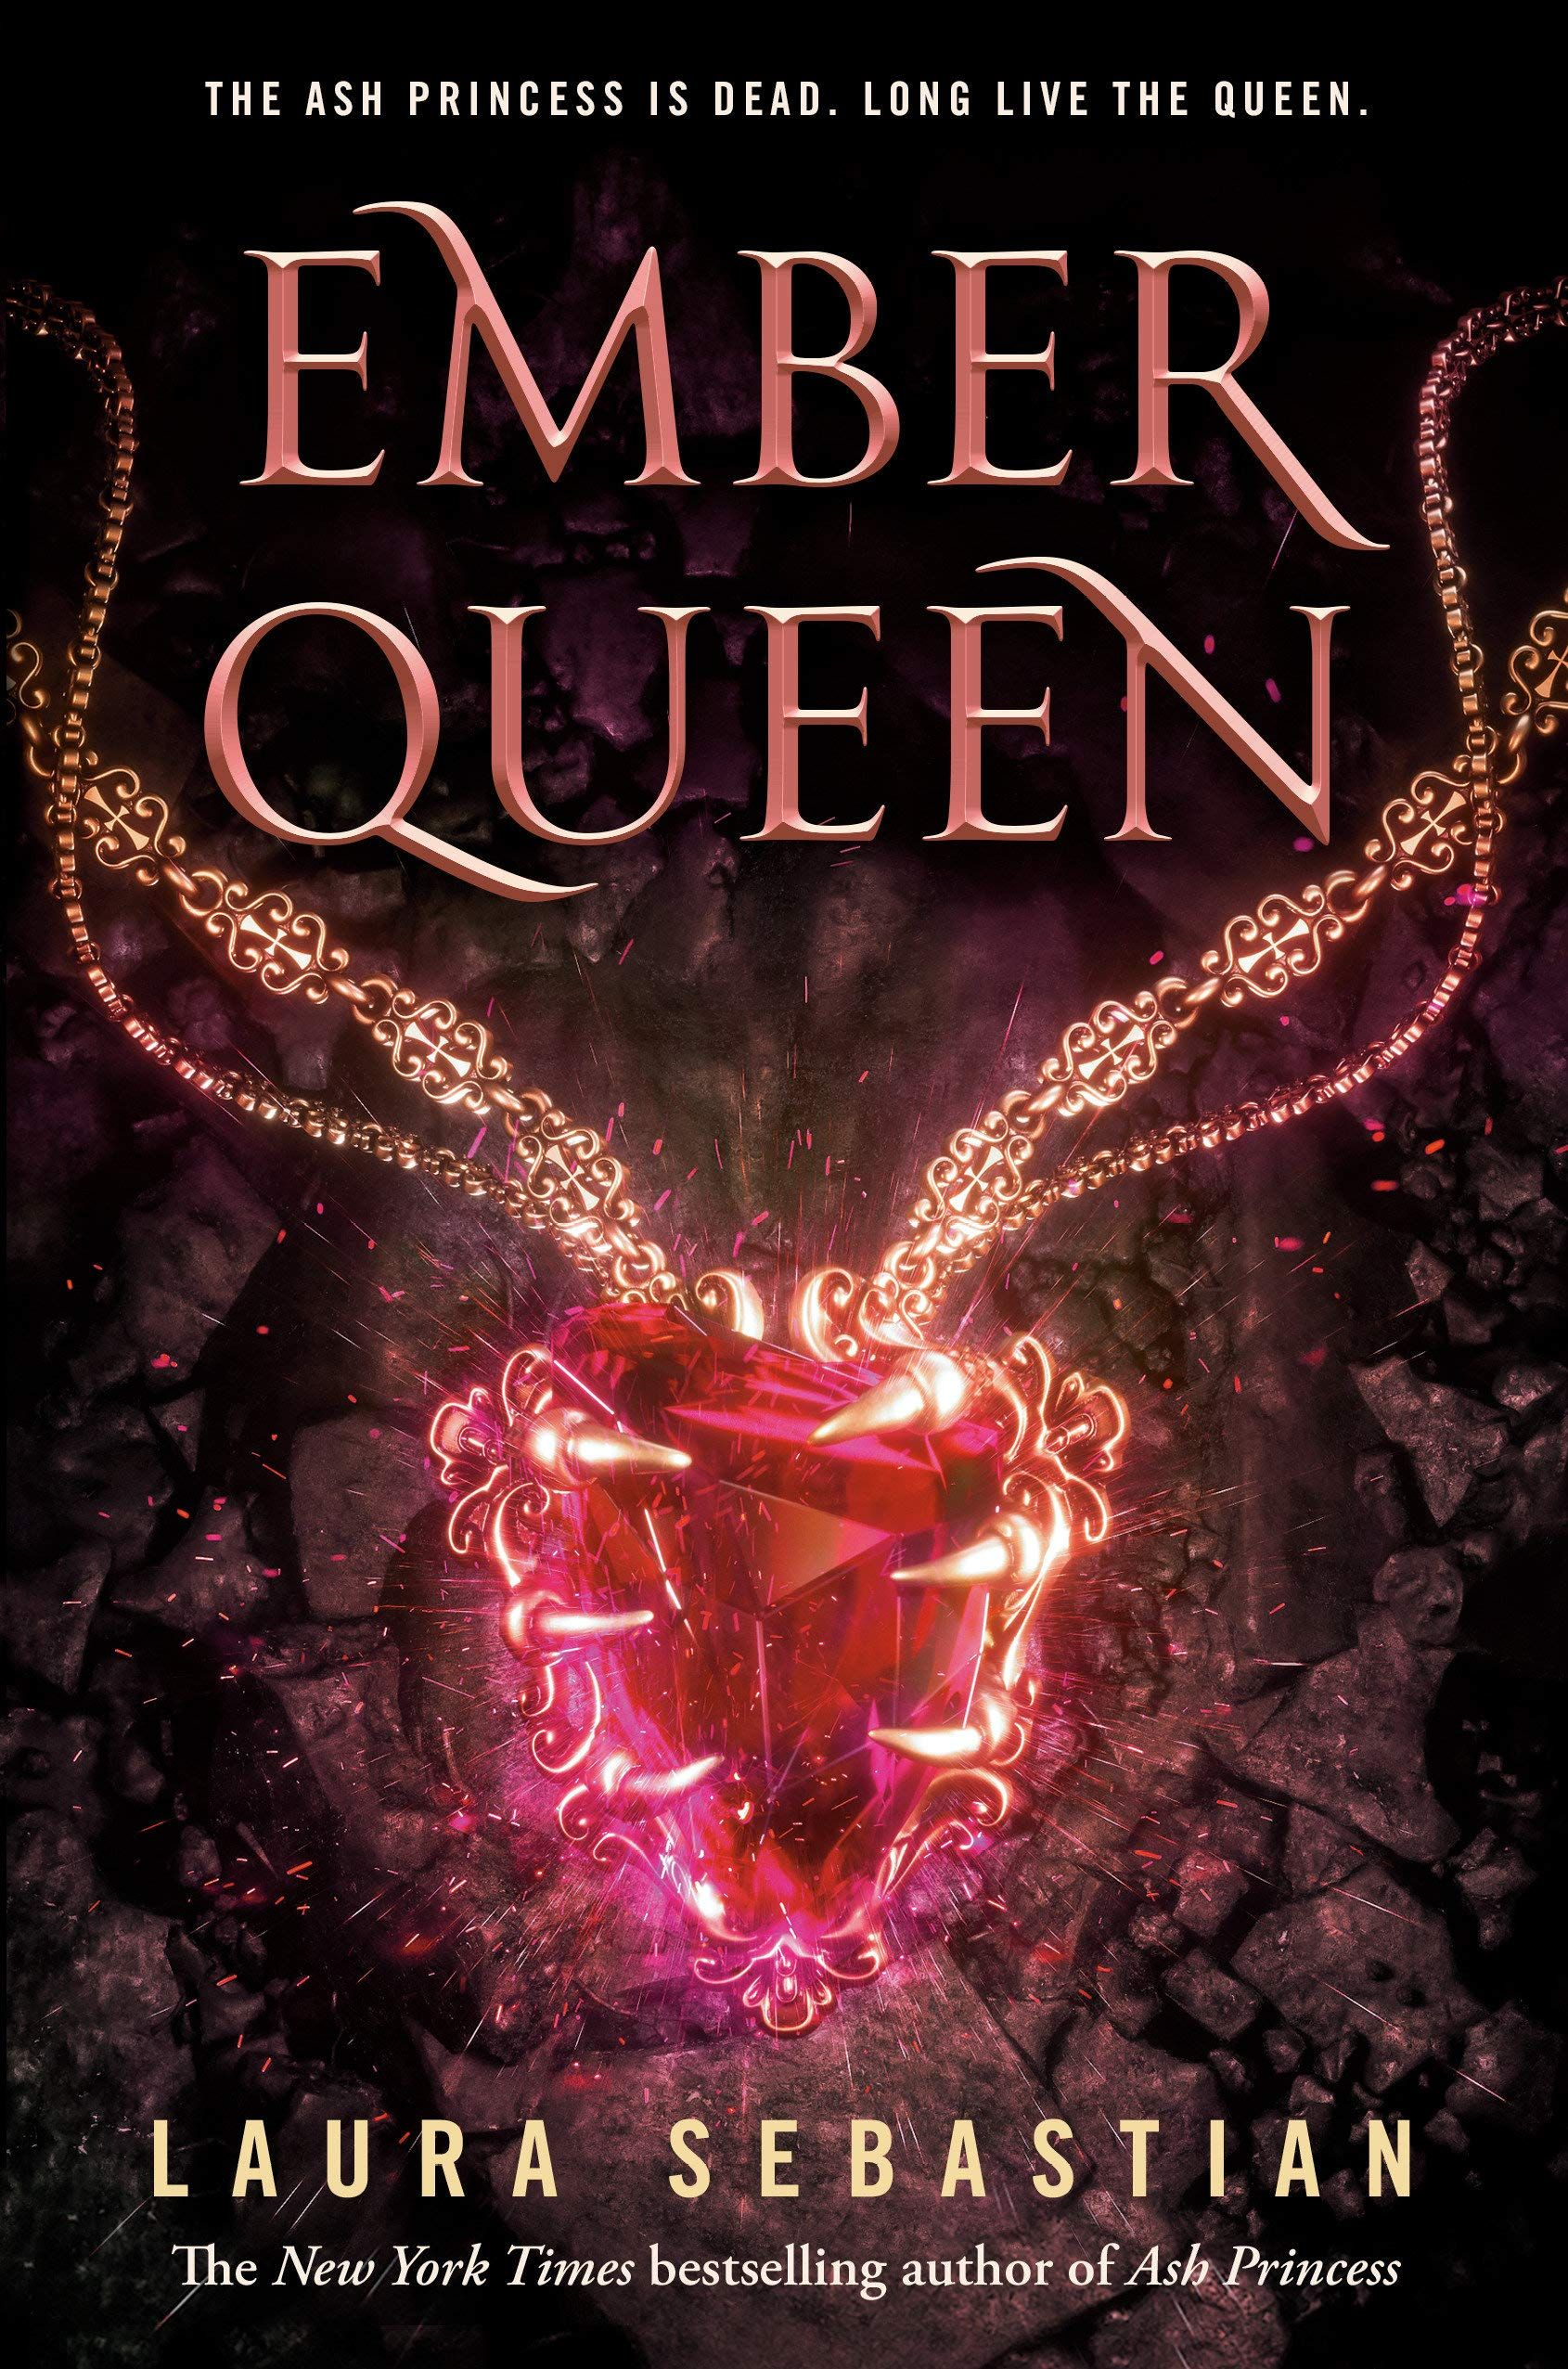 Ember Queen Pdf Ember Queen Epub Ember Queen Audiobook Ember Queen Pdf Free Download Ember Queen Read Online In 2020 Book Release Ya Book Covers Bestselling Books